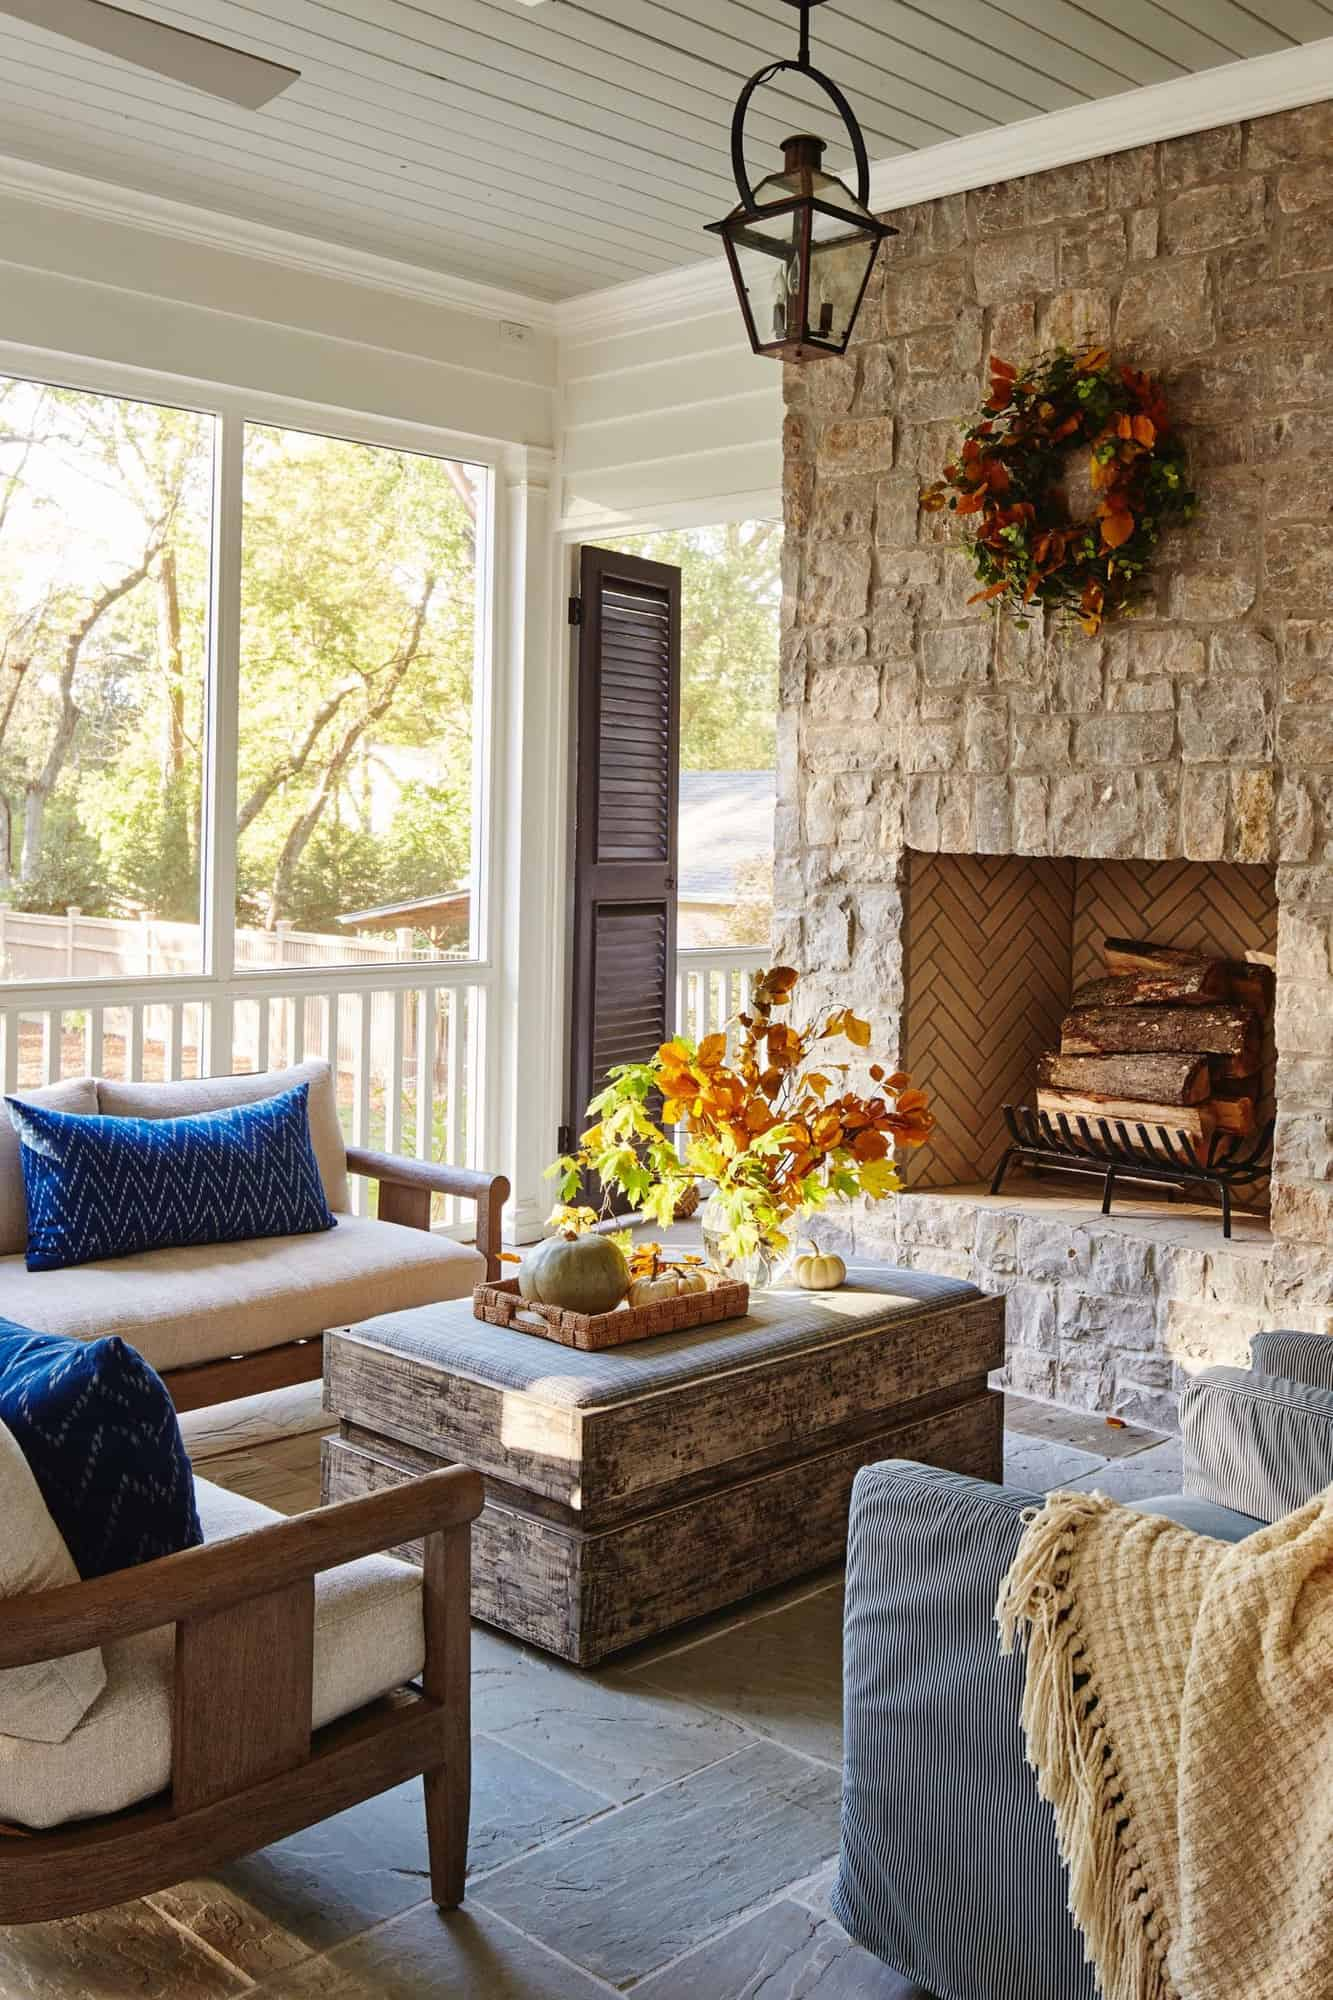 transitional-style-covered-porch-living-room-with-fireplace